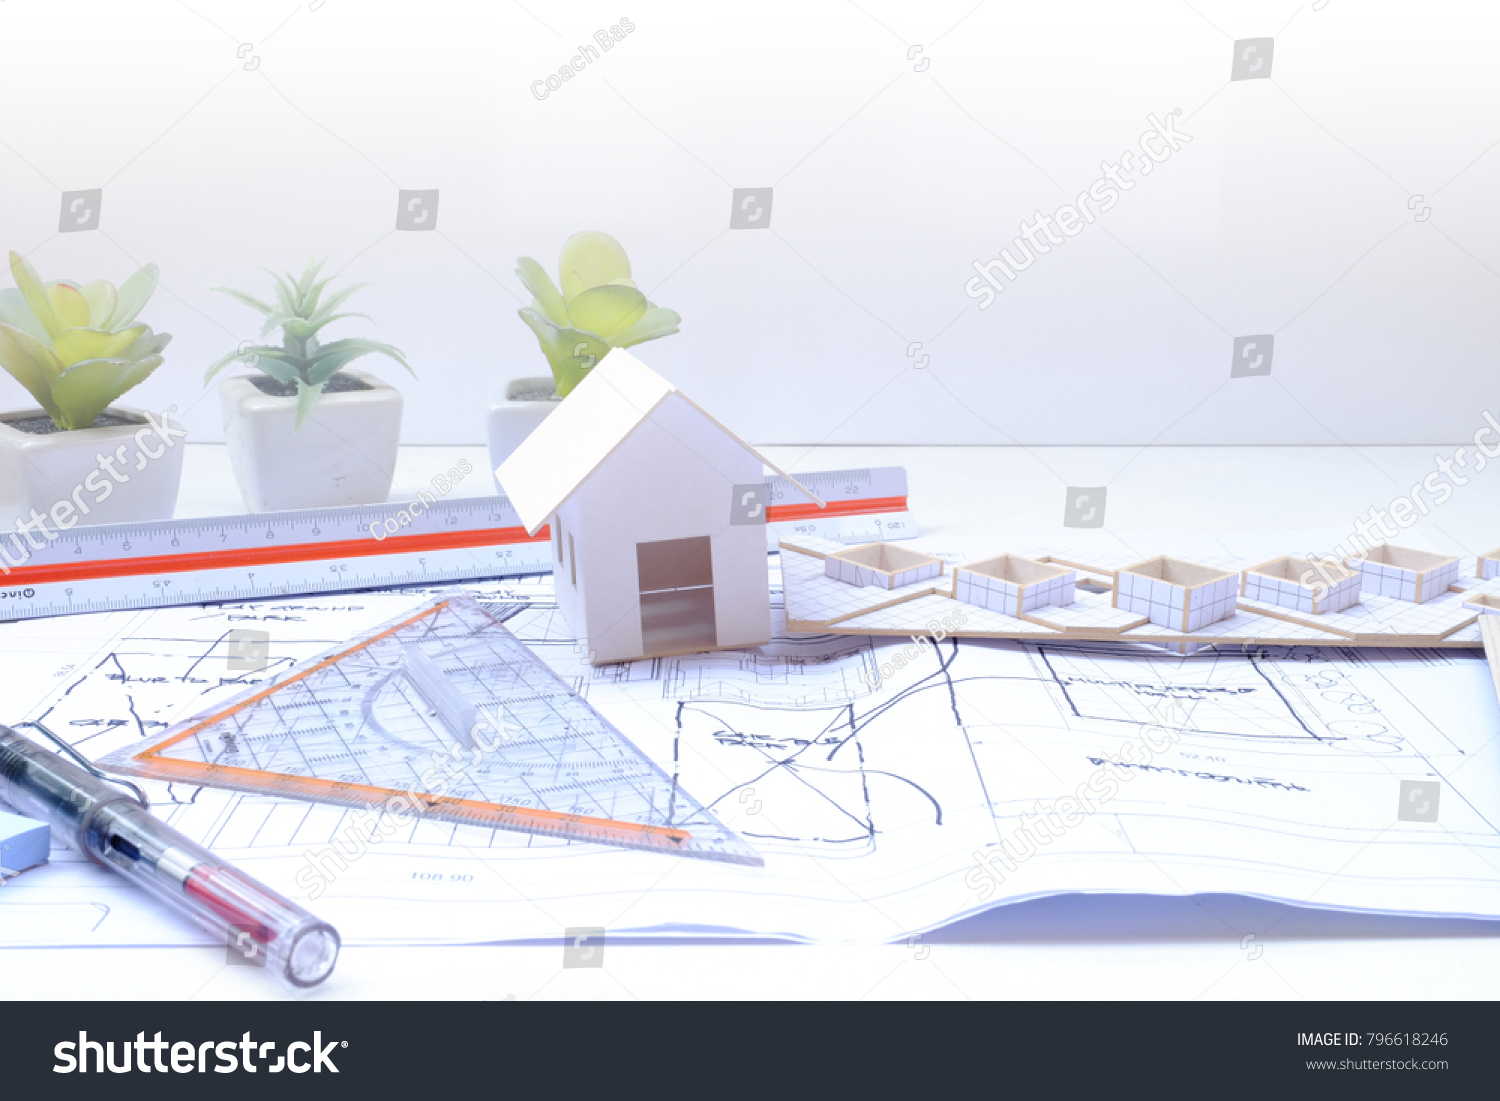 Working on process house plan architect stock photo download now working on process house plan architect drawing hand writing background concept house model white background ccuart Gallery